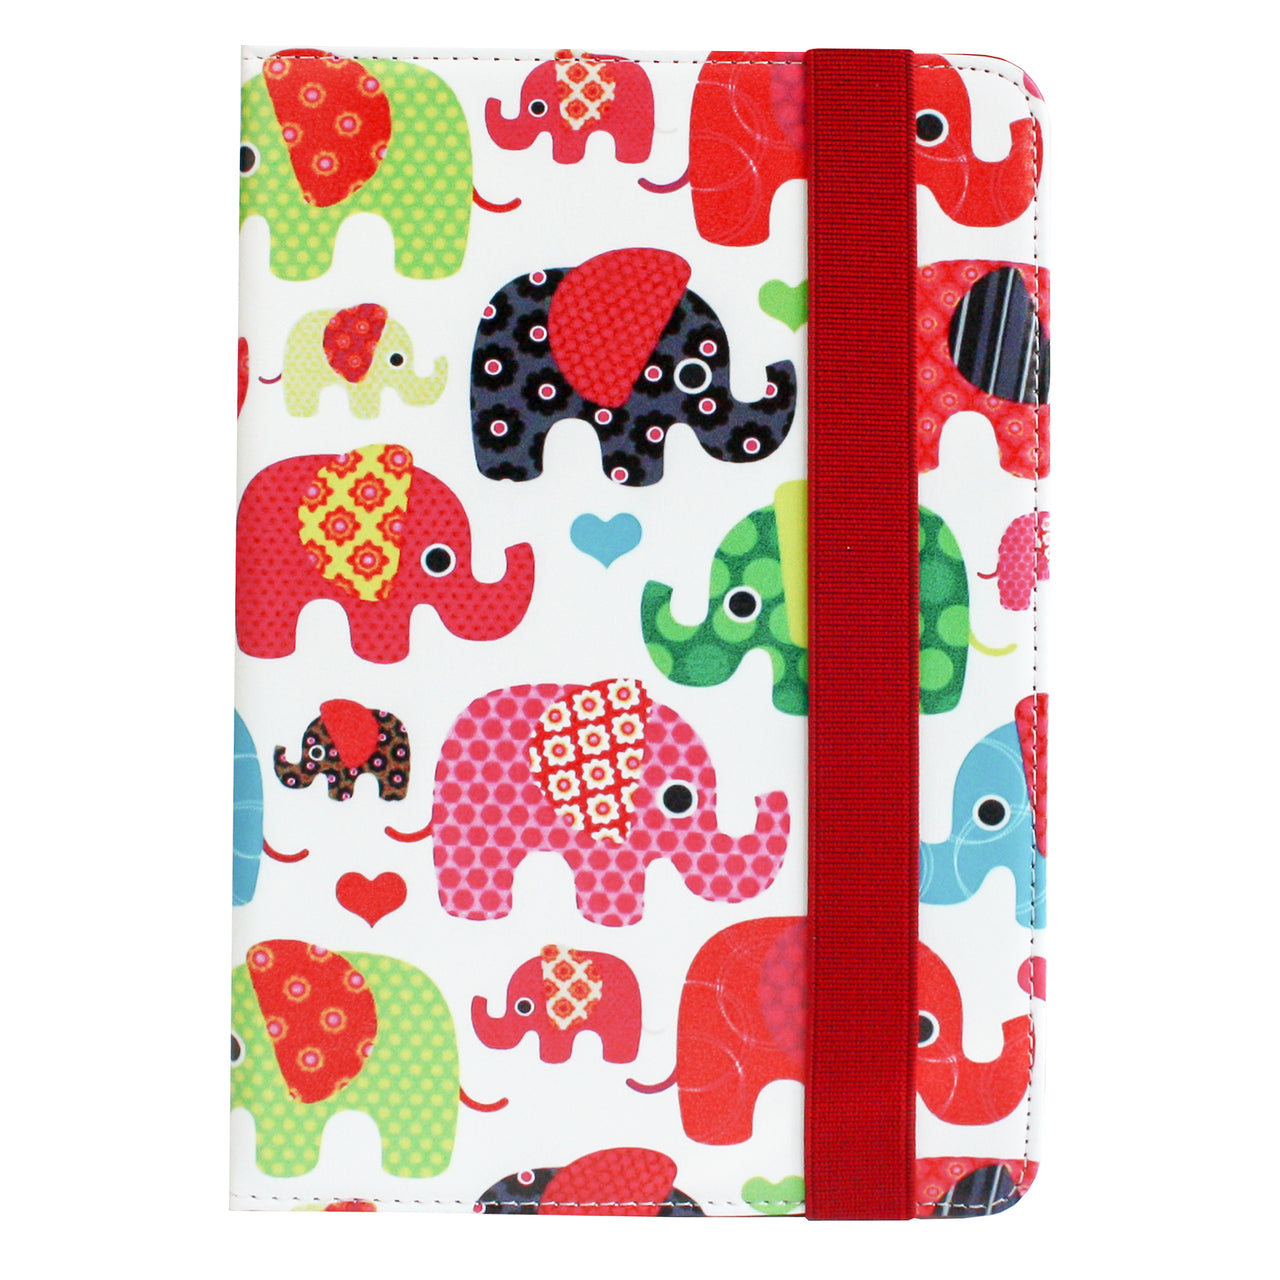 Universal Tablet Case - Multicolored Elephants